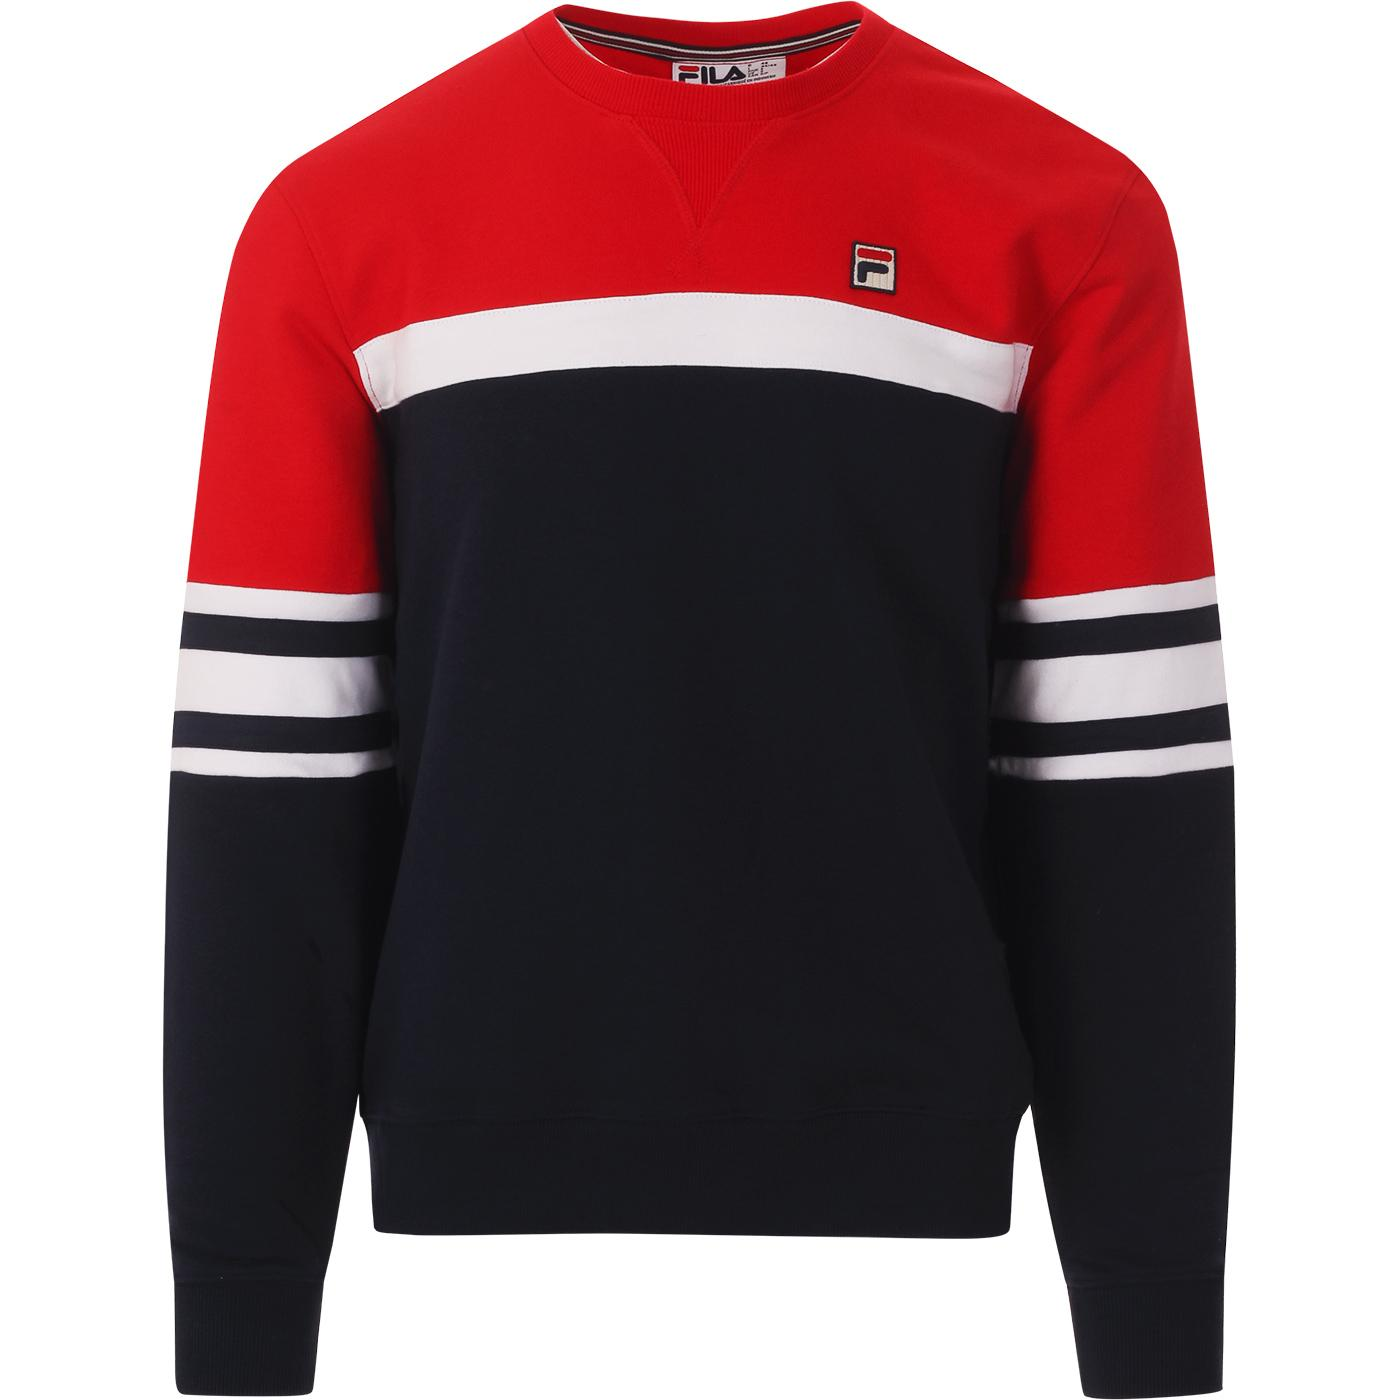 Verus FILA VINTAGE Colour Block Sweatshirt (P/R)